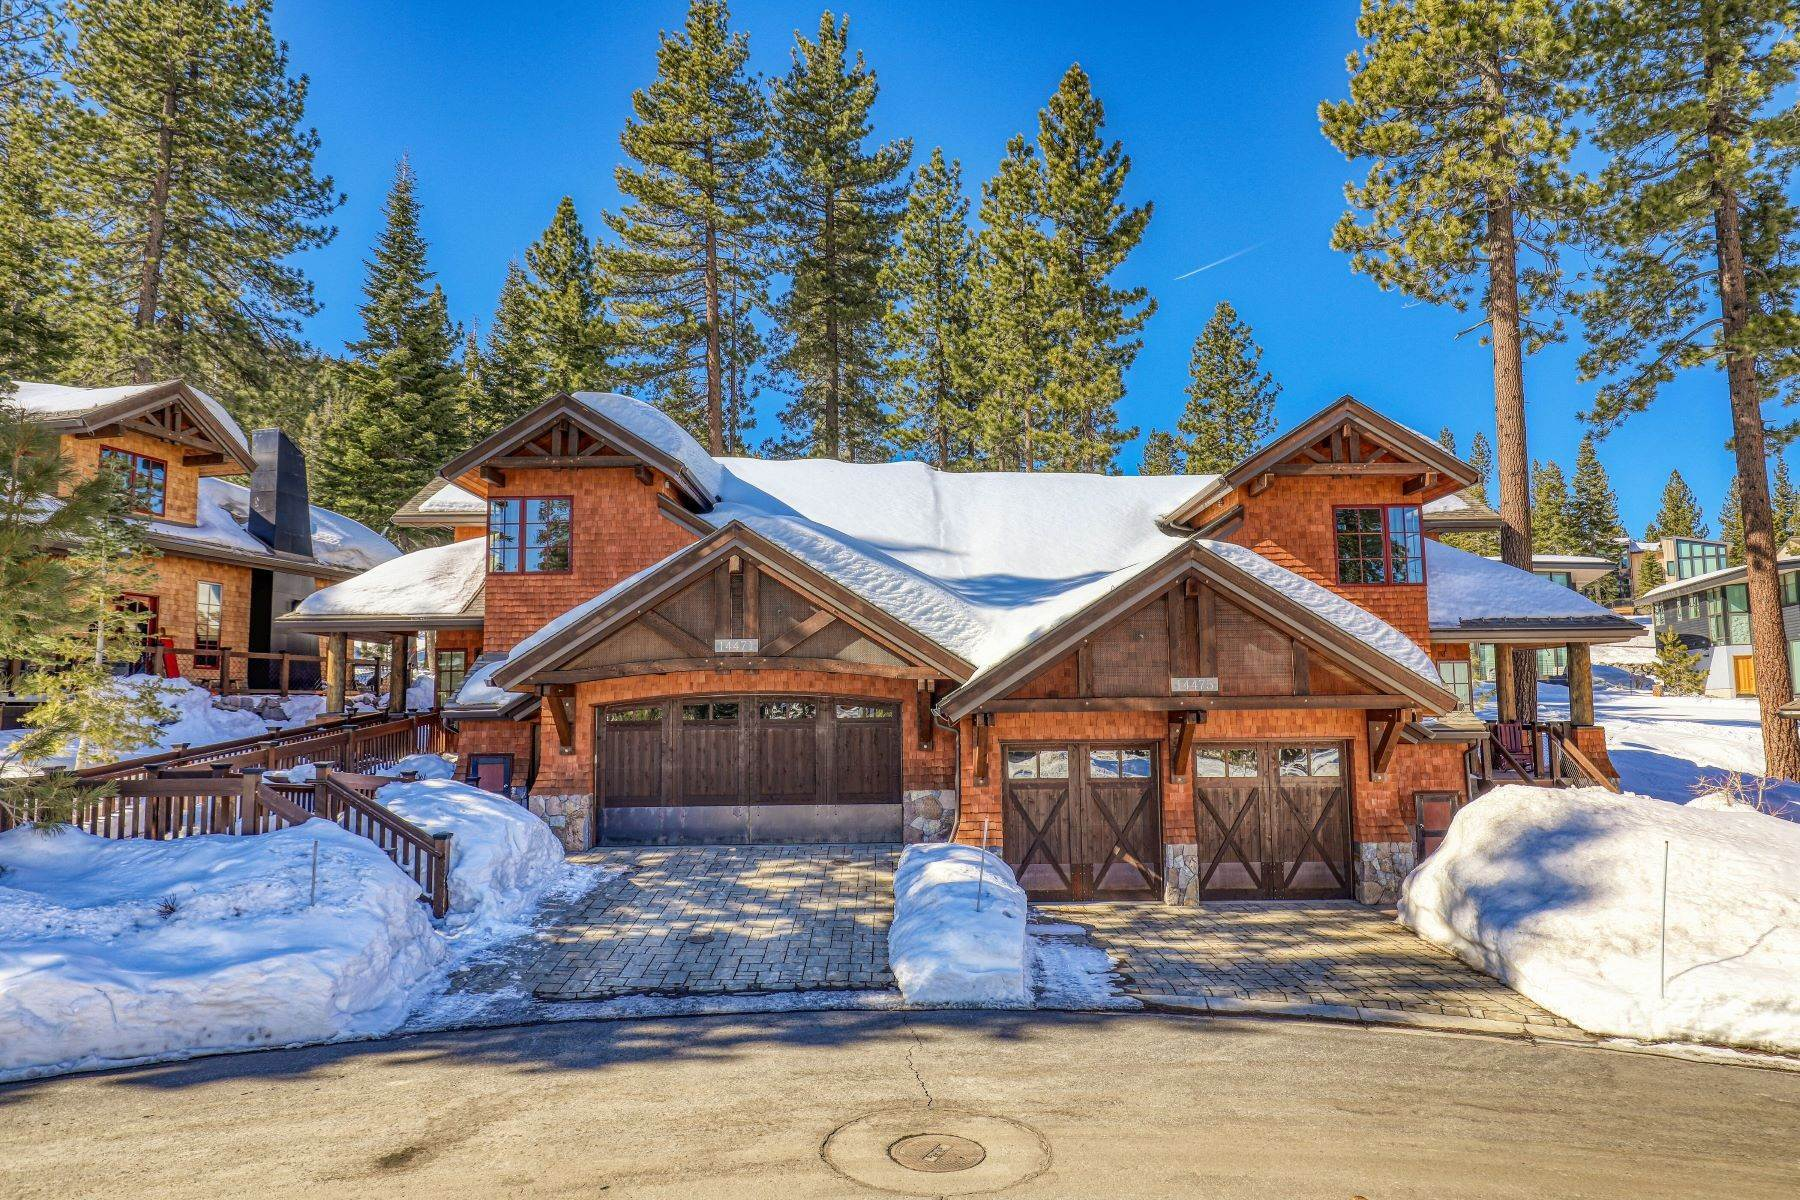 Property en 14471 Home Run Trail #10 Truckee, California 96161 Estados Unidos